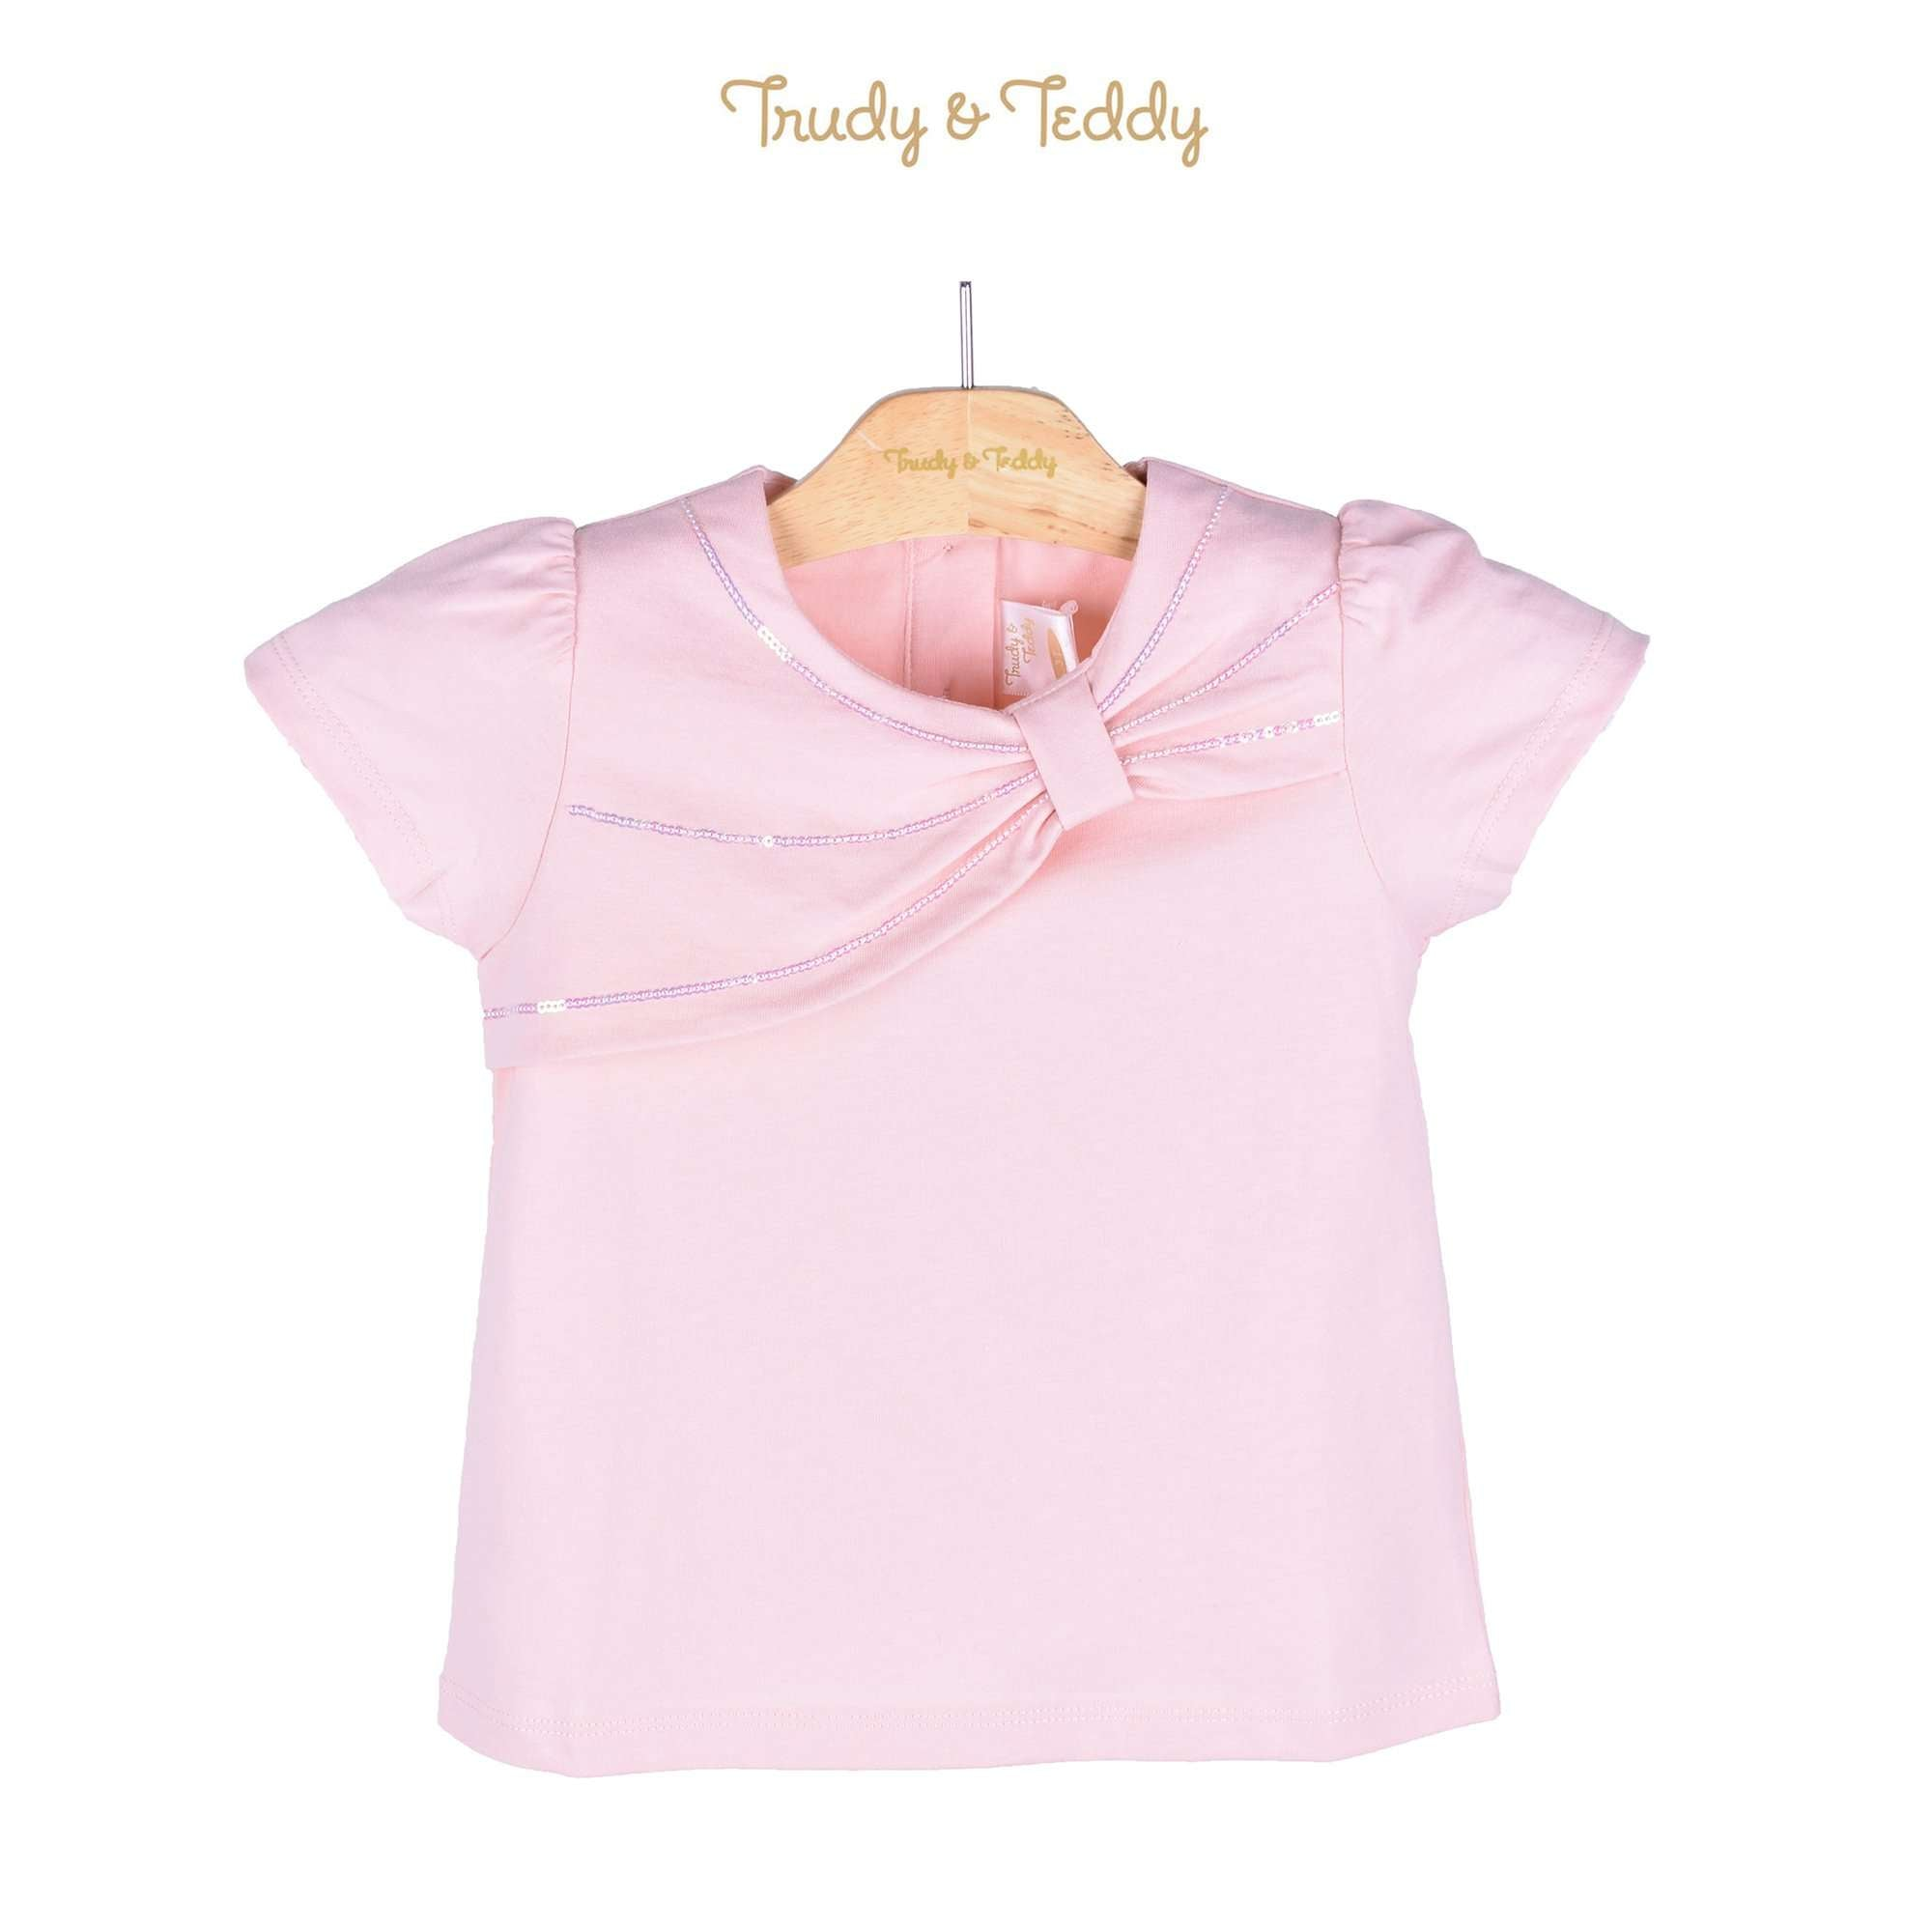 Trudy & Teddy Toddler Girl Short Sleeve Tee 815122-111 : Buy Trudy & Teddy online at CMG.MY